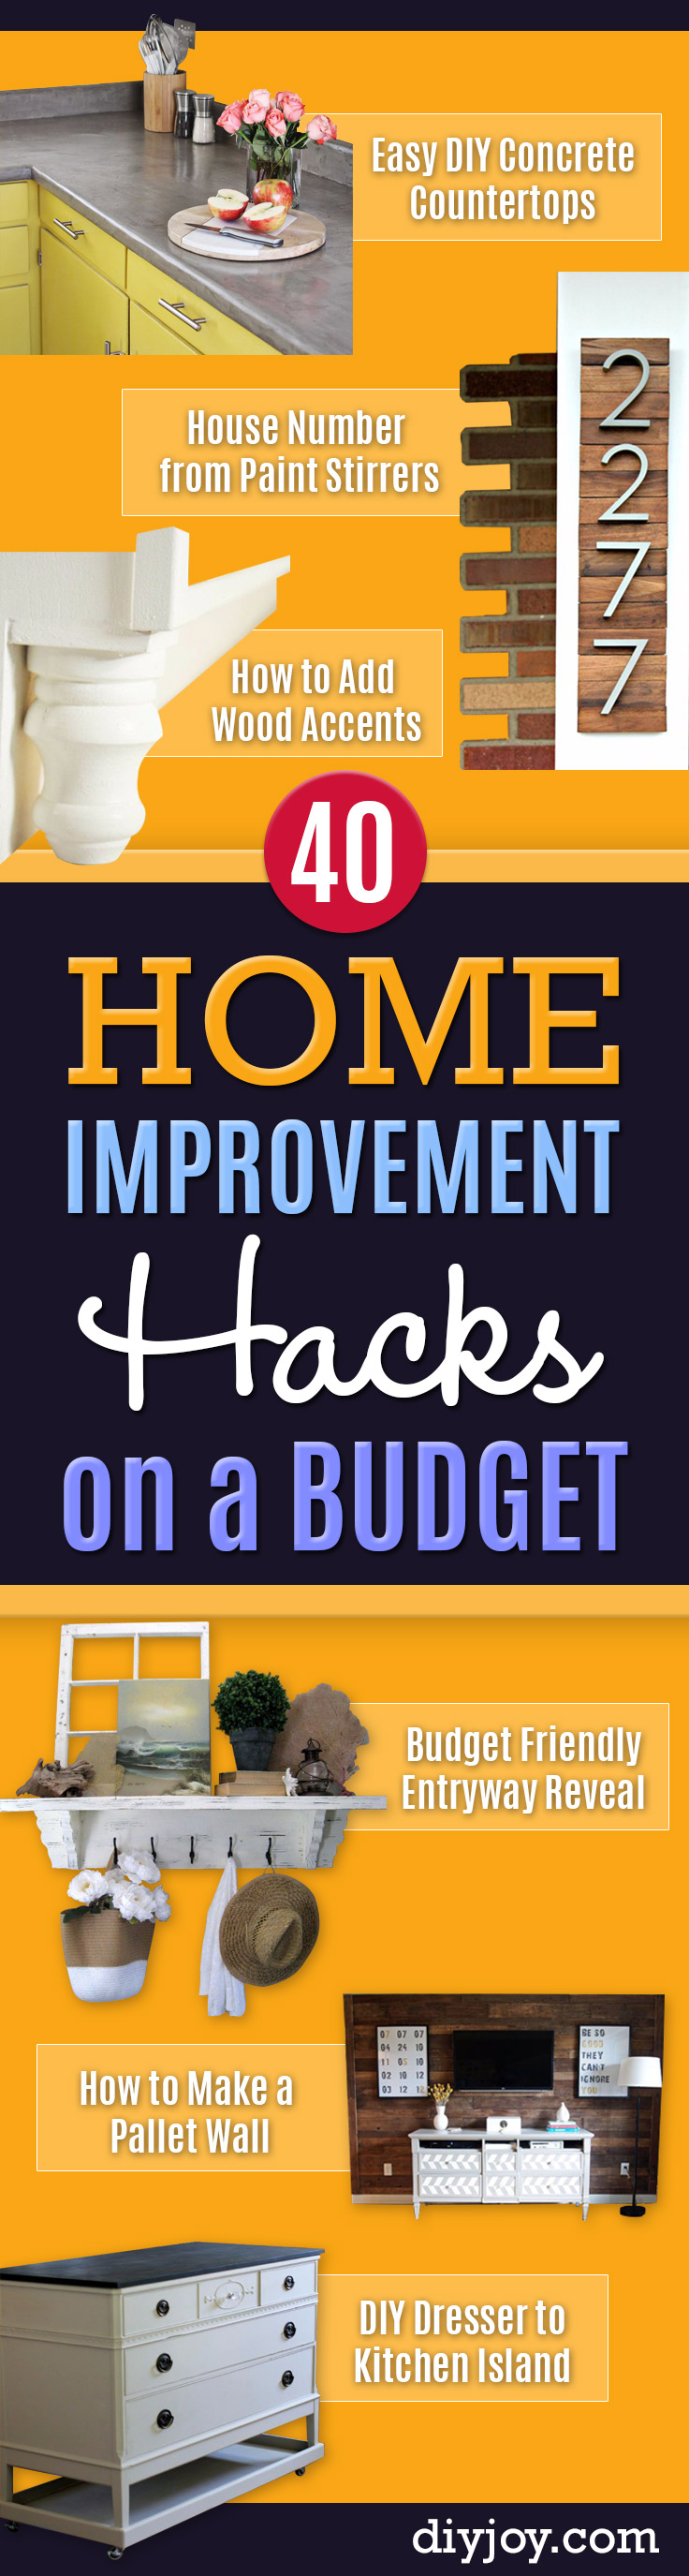 Diy Home Improvement On A Budget Easy And Cheap Do It Yourself Tutorials For Updating